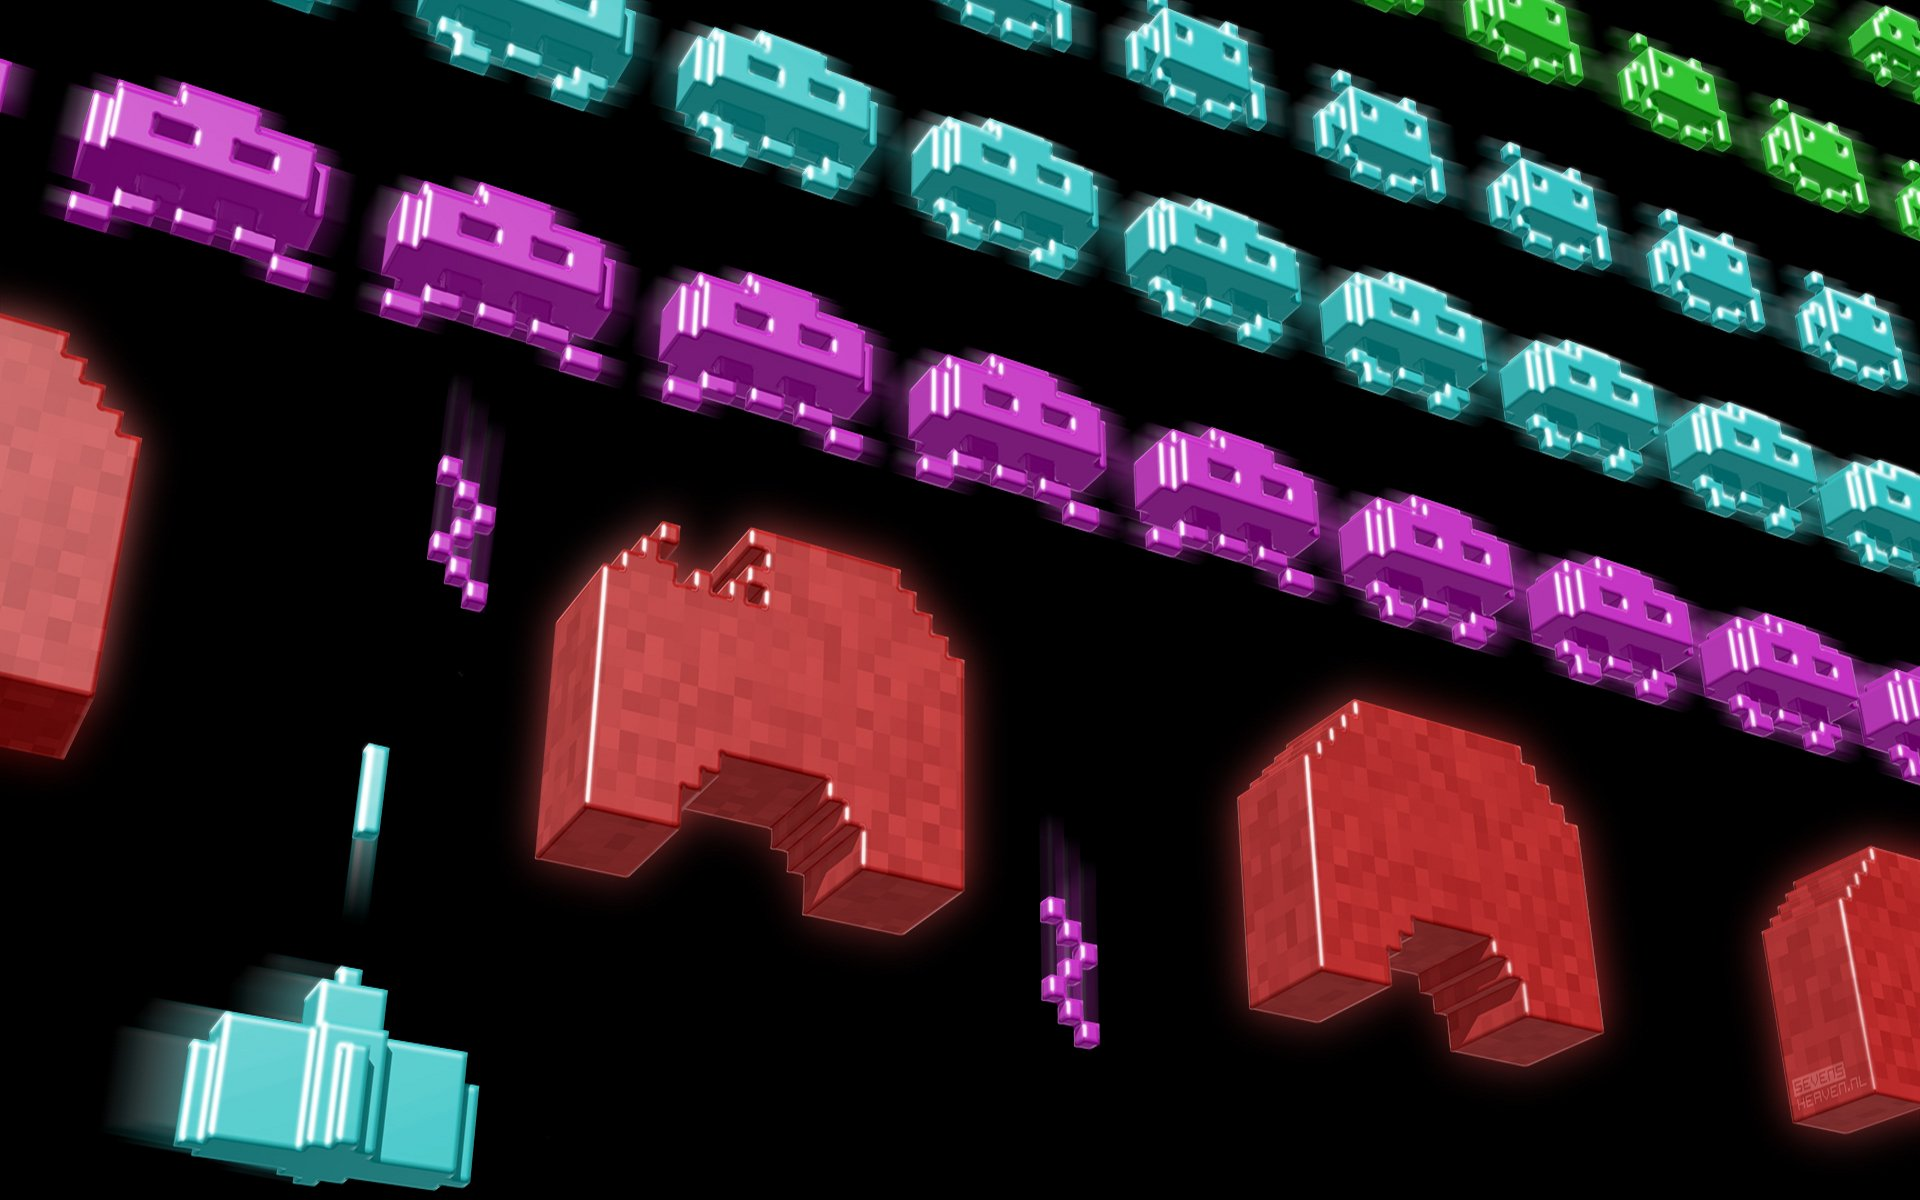 space wallpapers invaders retro wallpaper 1920x1200